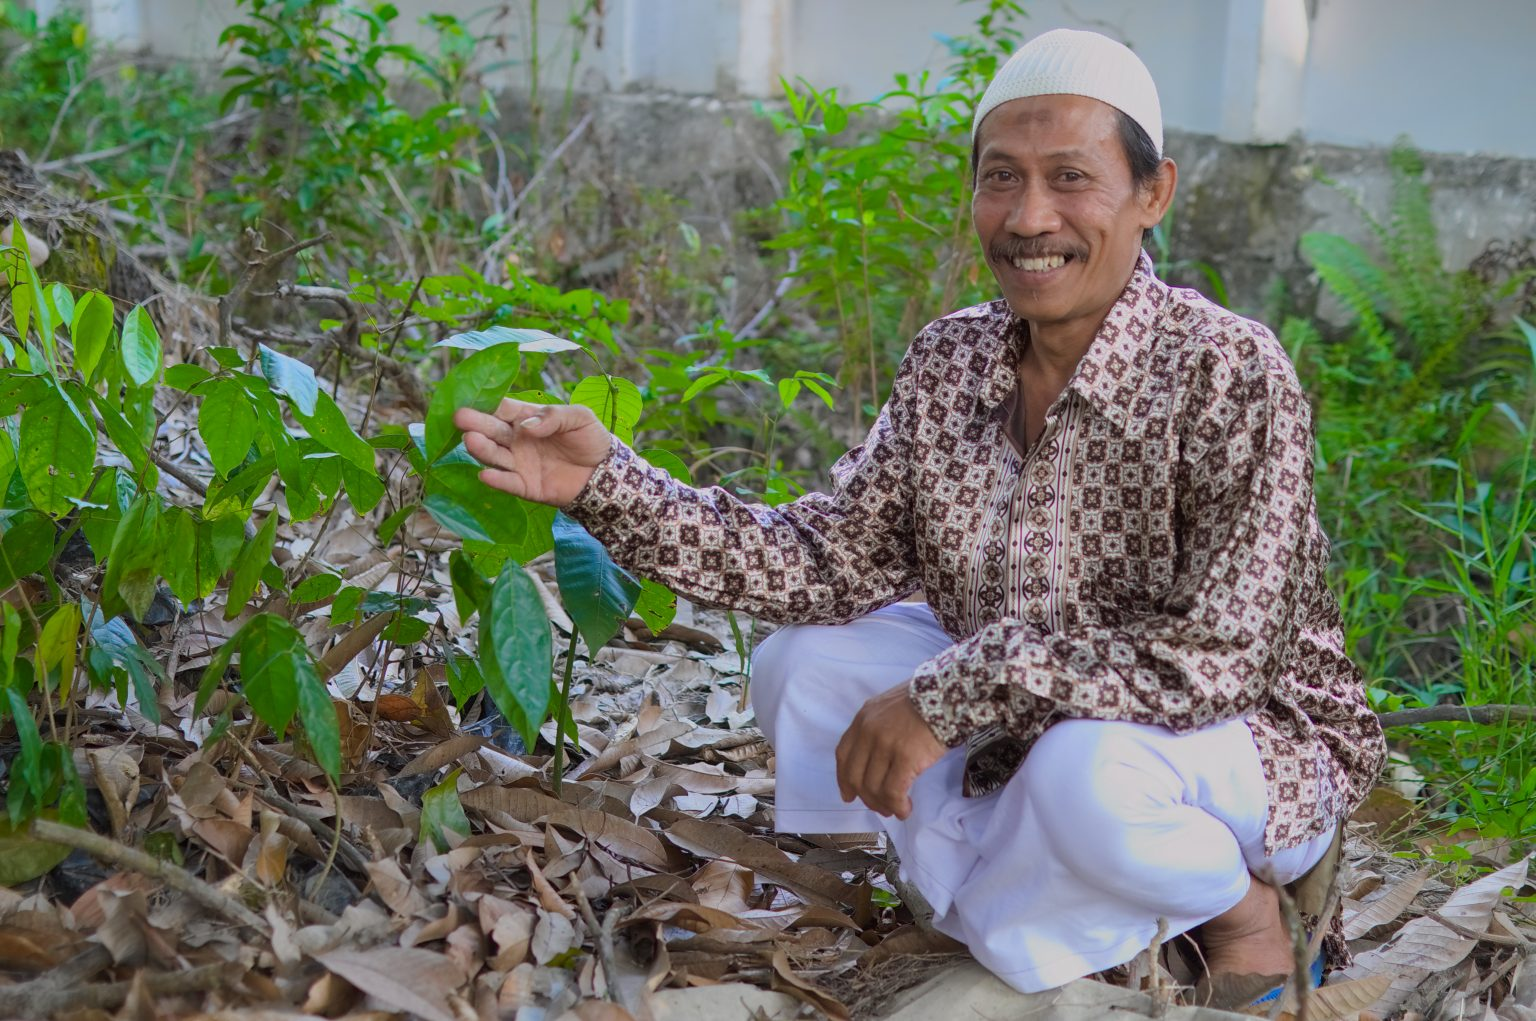 Meet Pak Didin - here next to seedlings at the clinic